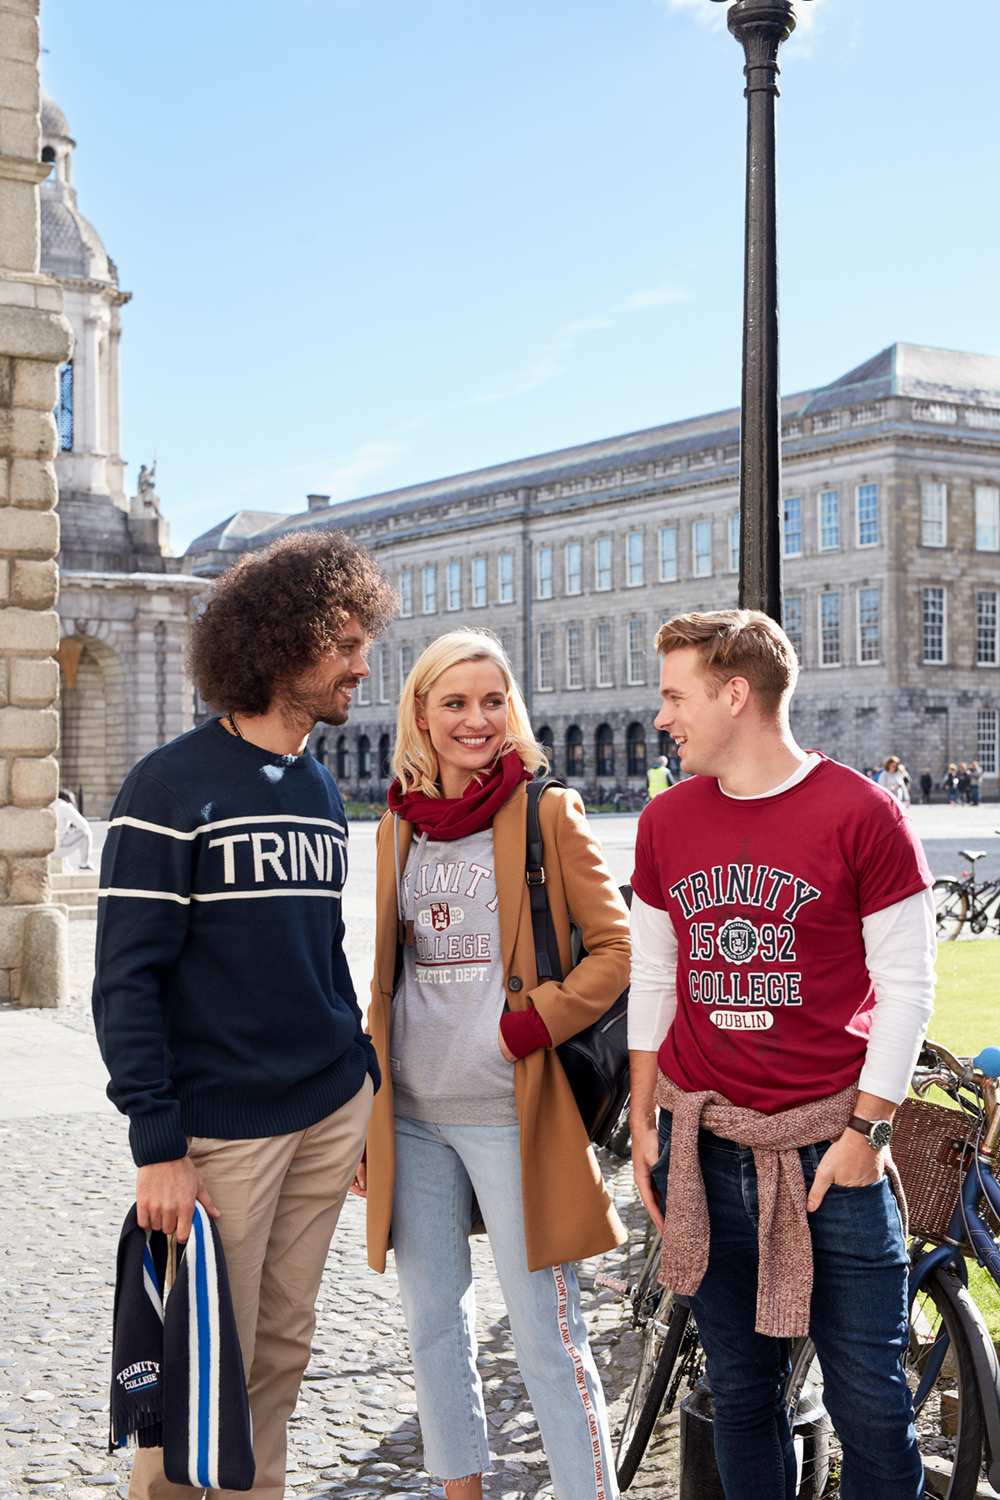 Trinity College Dublin merchandise shot by Johnny McMillan 5.jpg